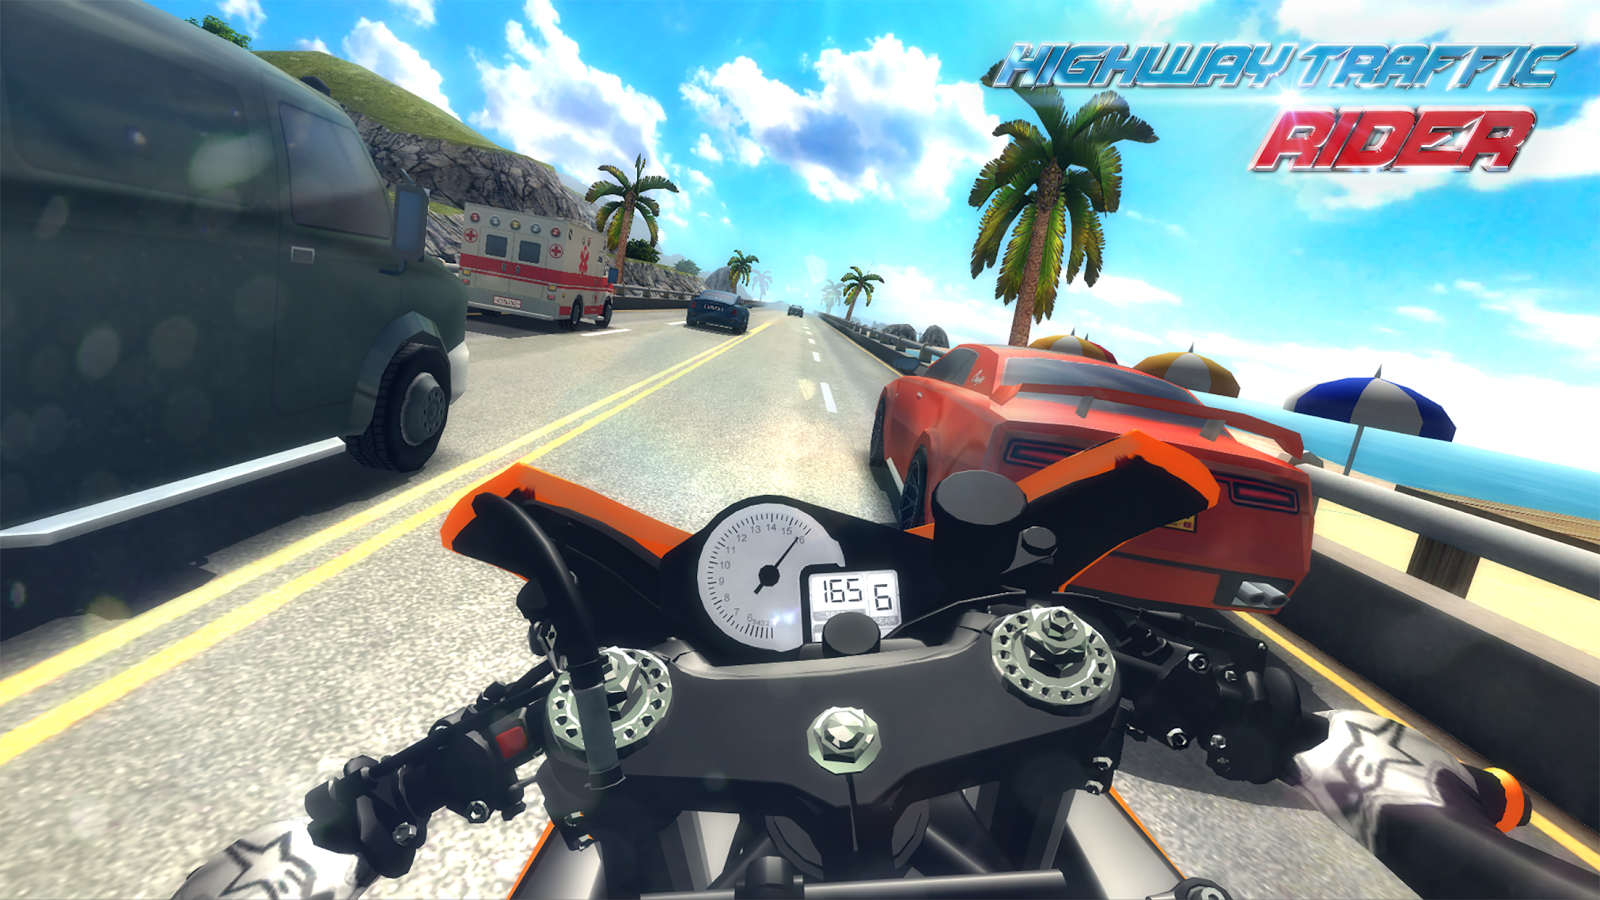 Highway Traffic Rider Screenshot 5